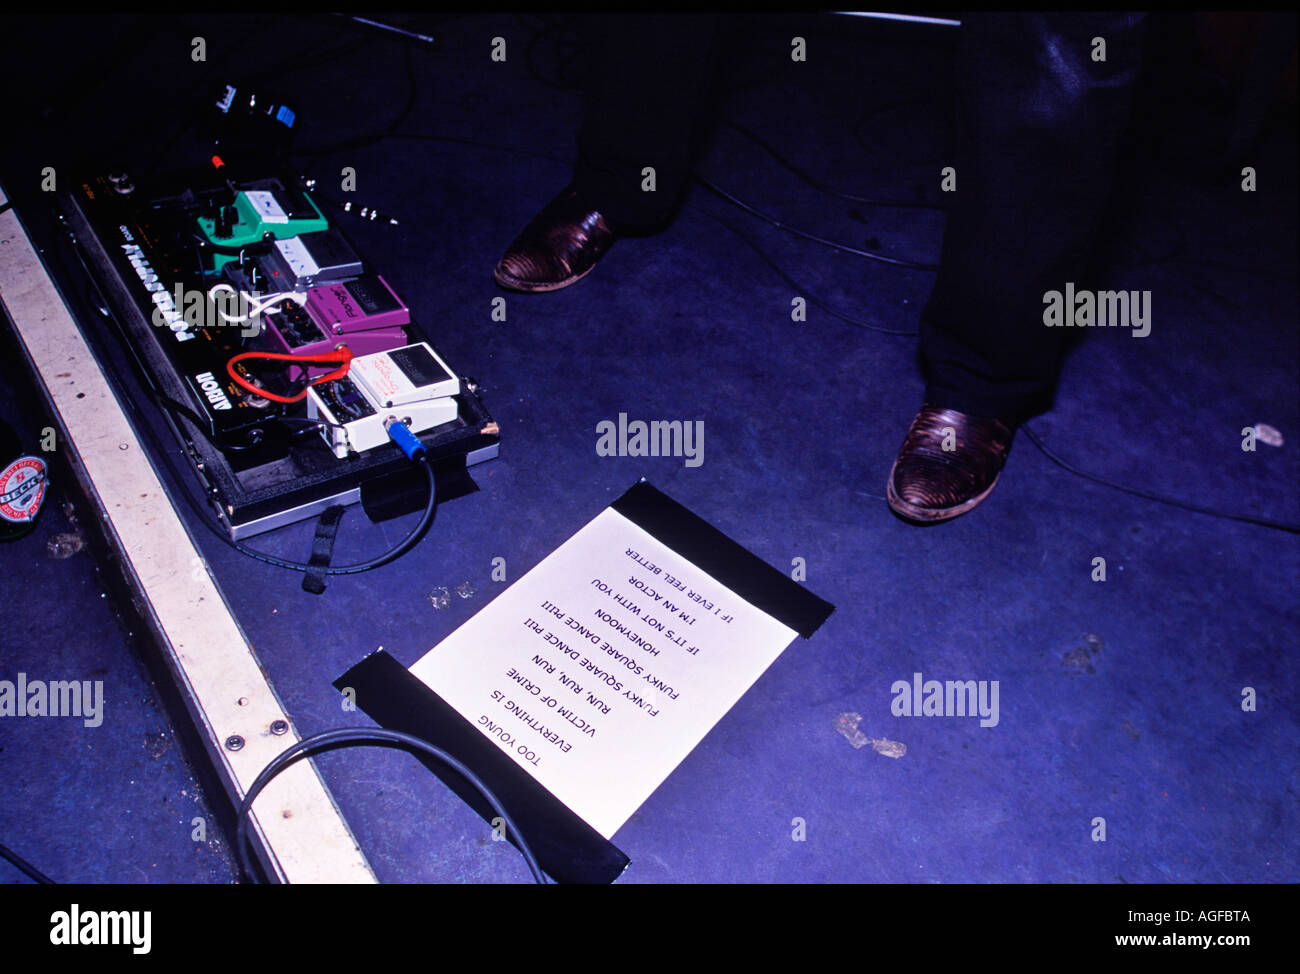 Playlist on the floor of the stage at Phoenix gig at Metro London - Stock Image